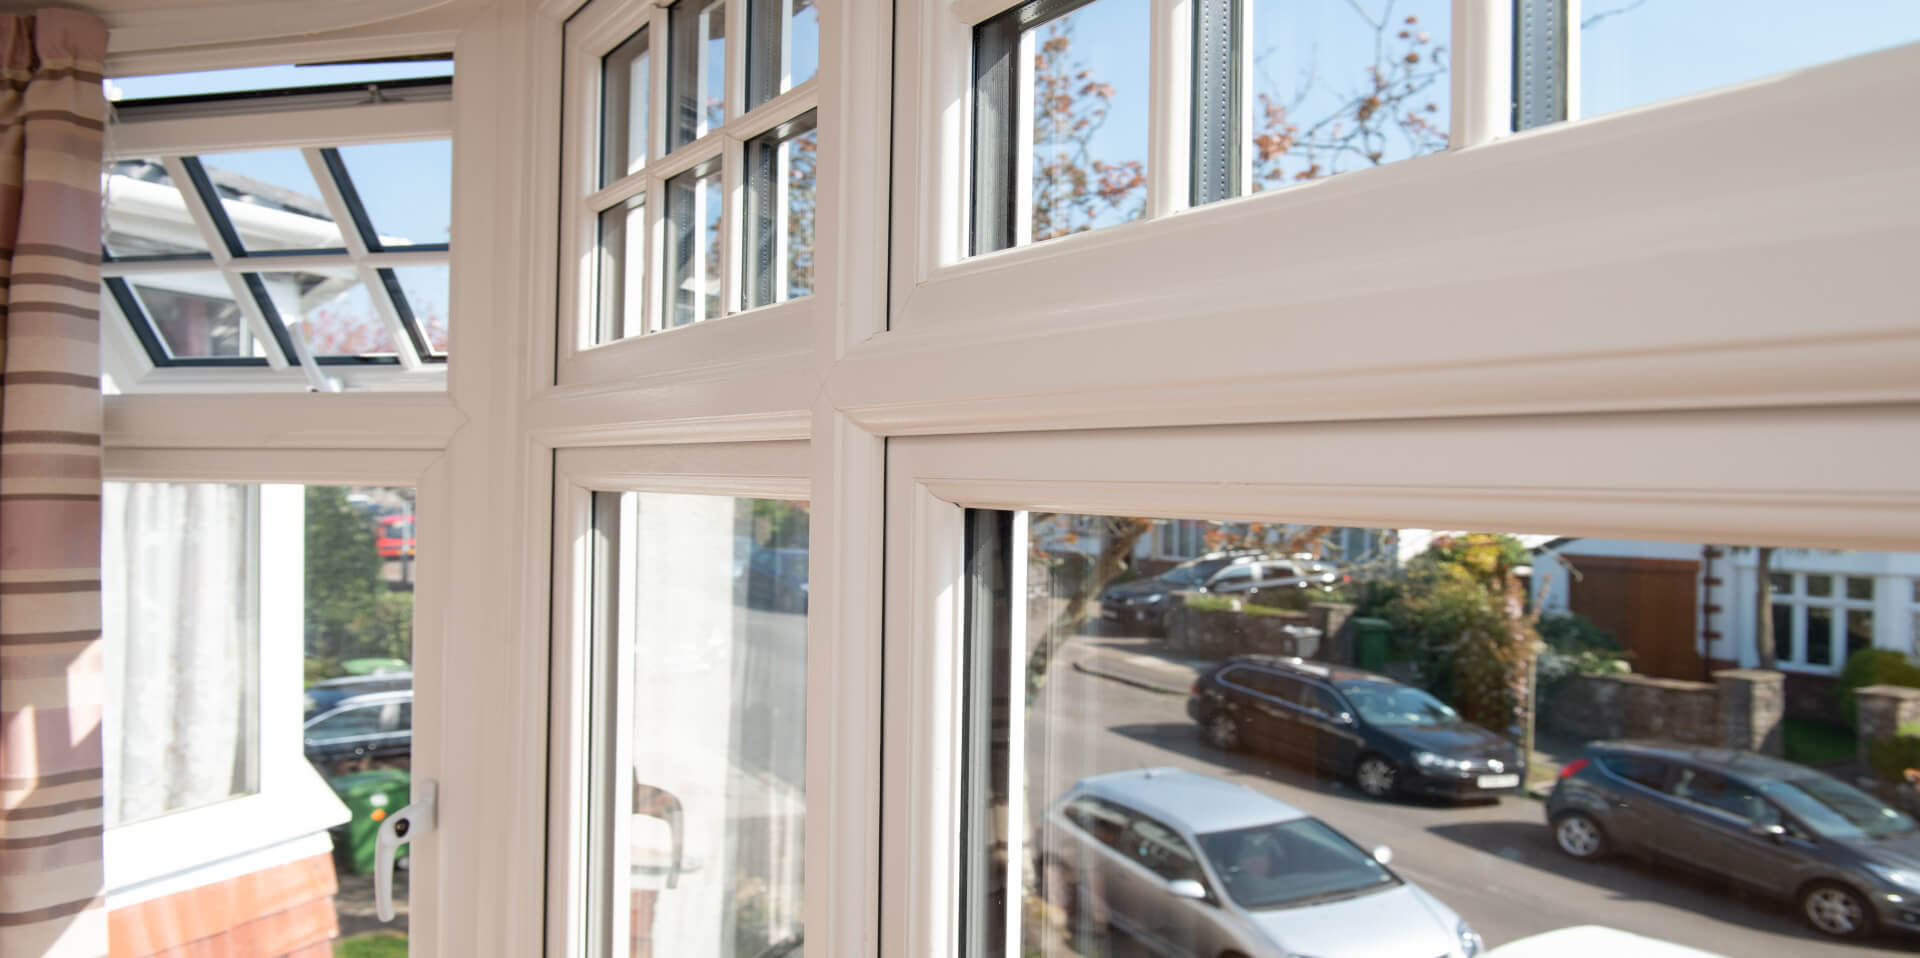 Eurocell uPVC casement windows